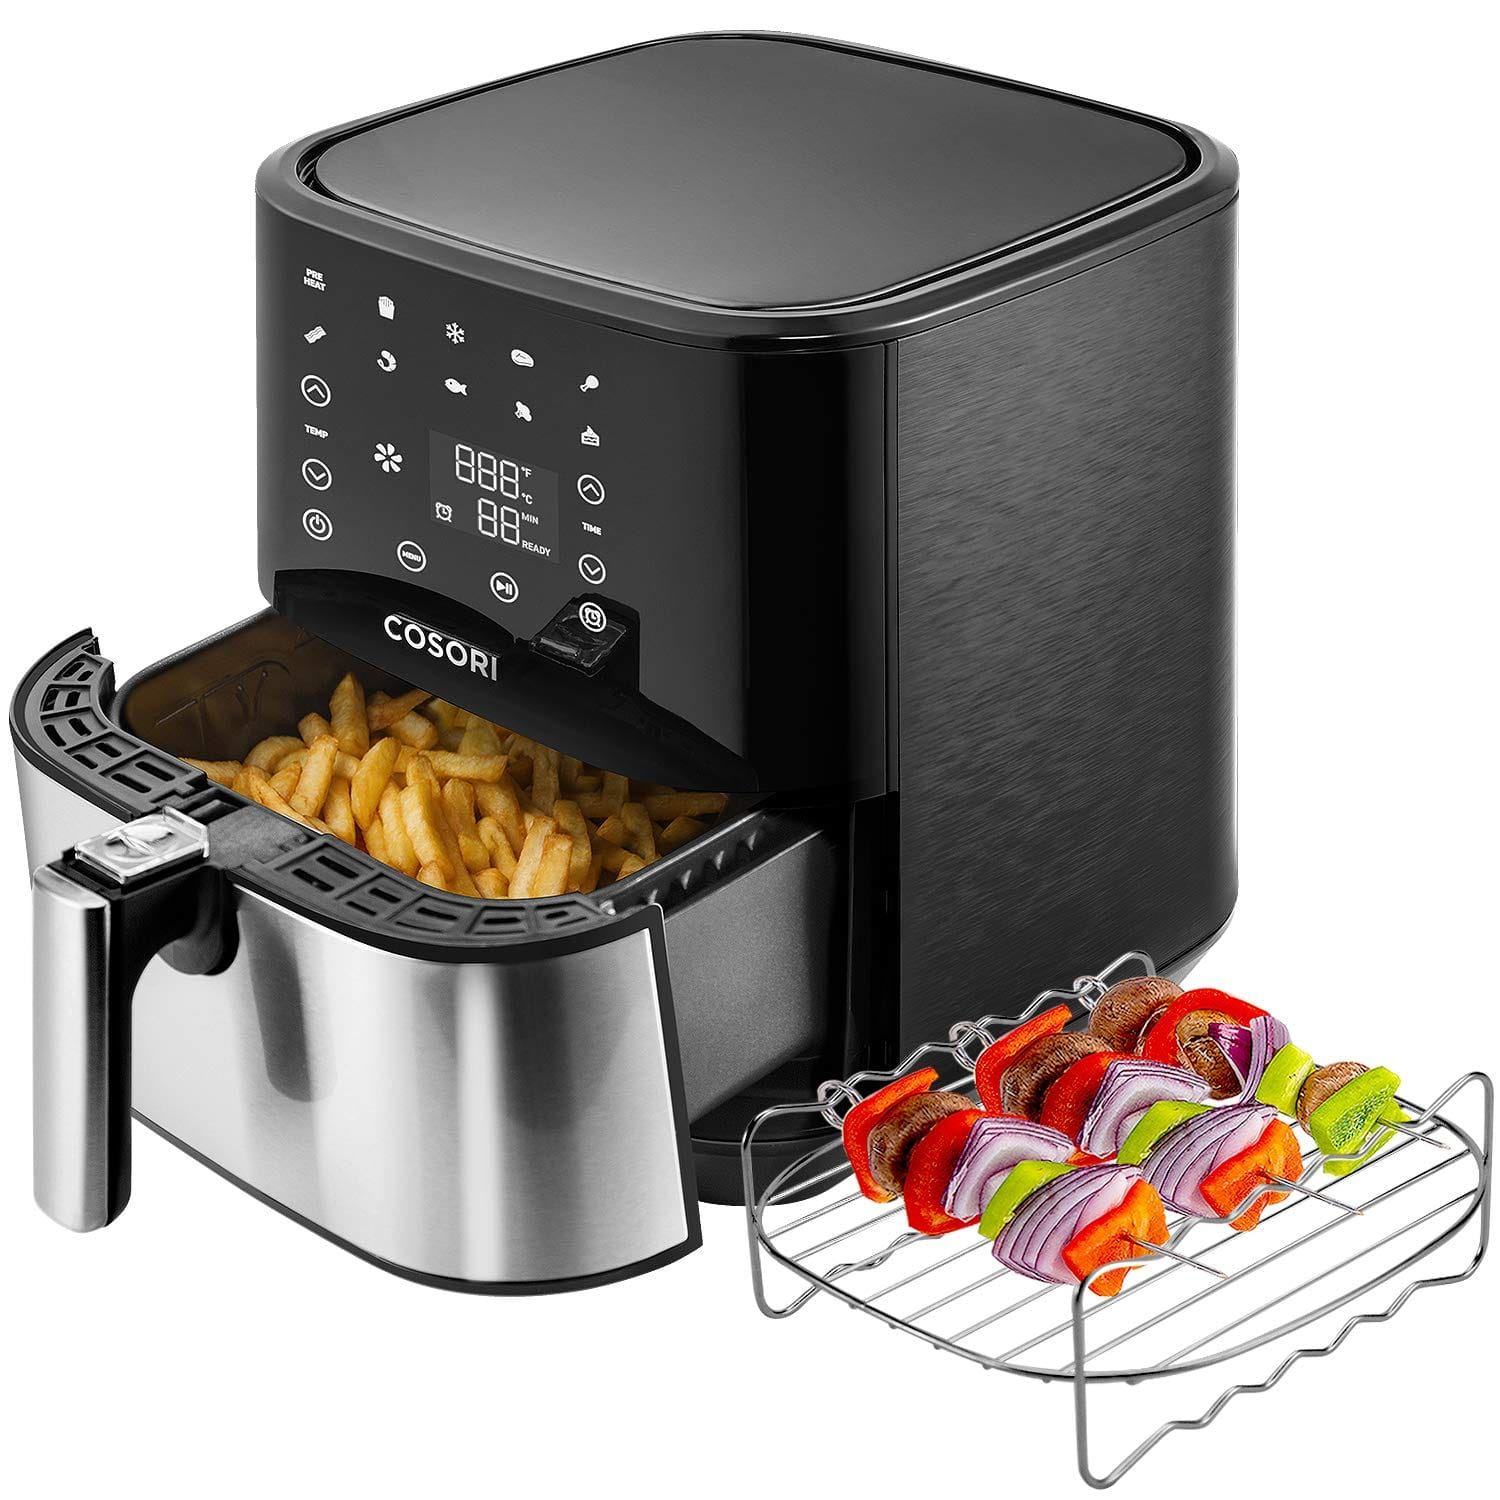 Lightning deal - COSORI Stainless Steel Air Fryer 5.8Qt 9 Presets Nonstick Basket $96.20